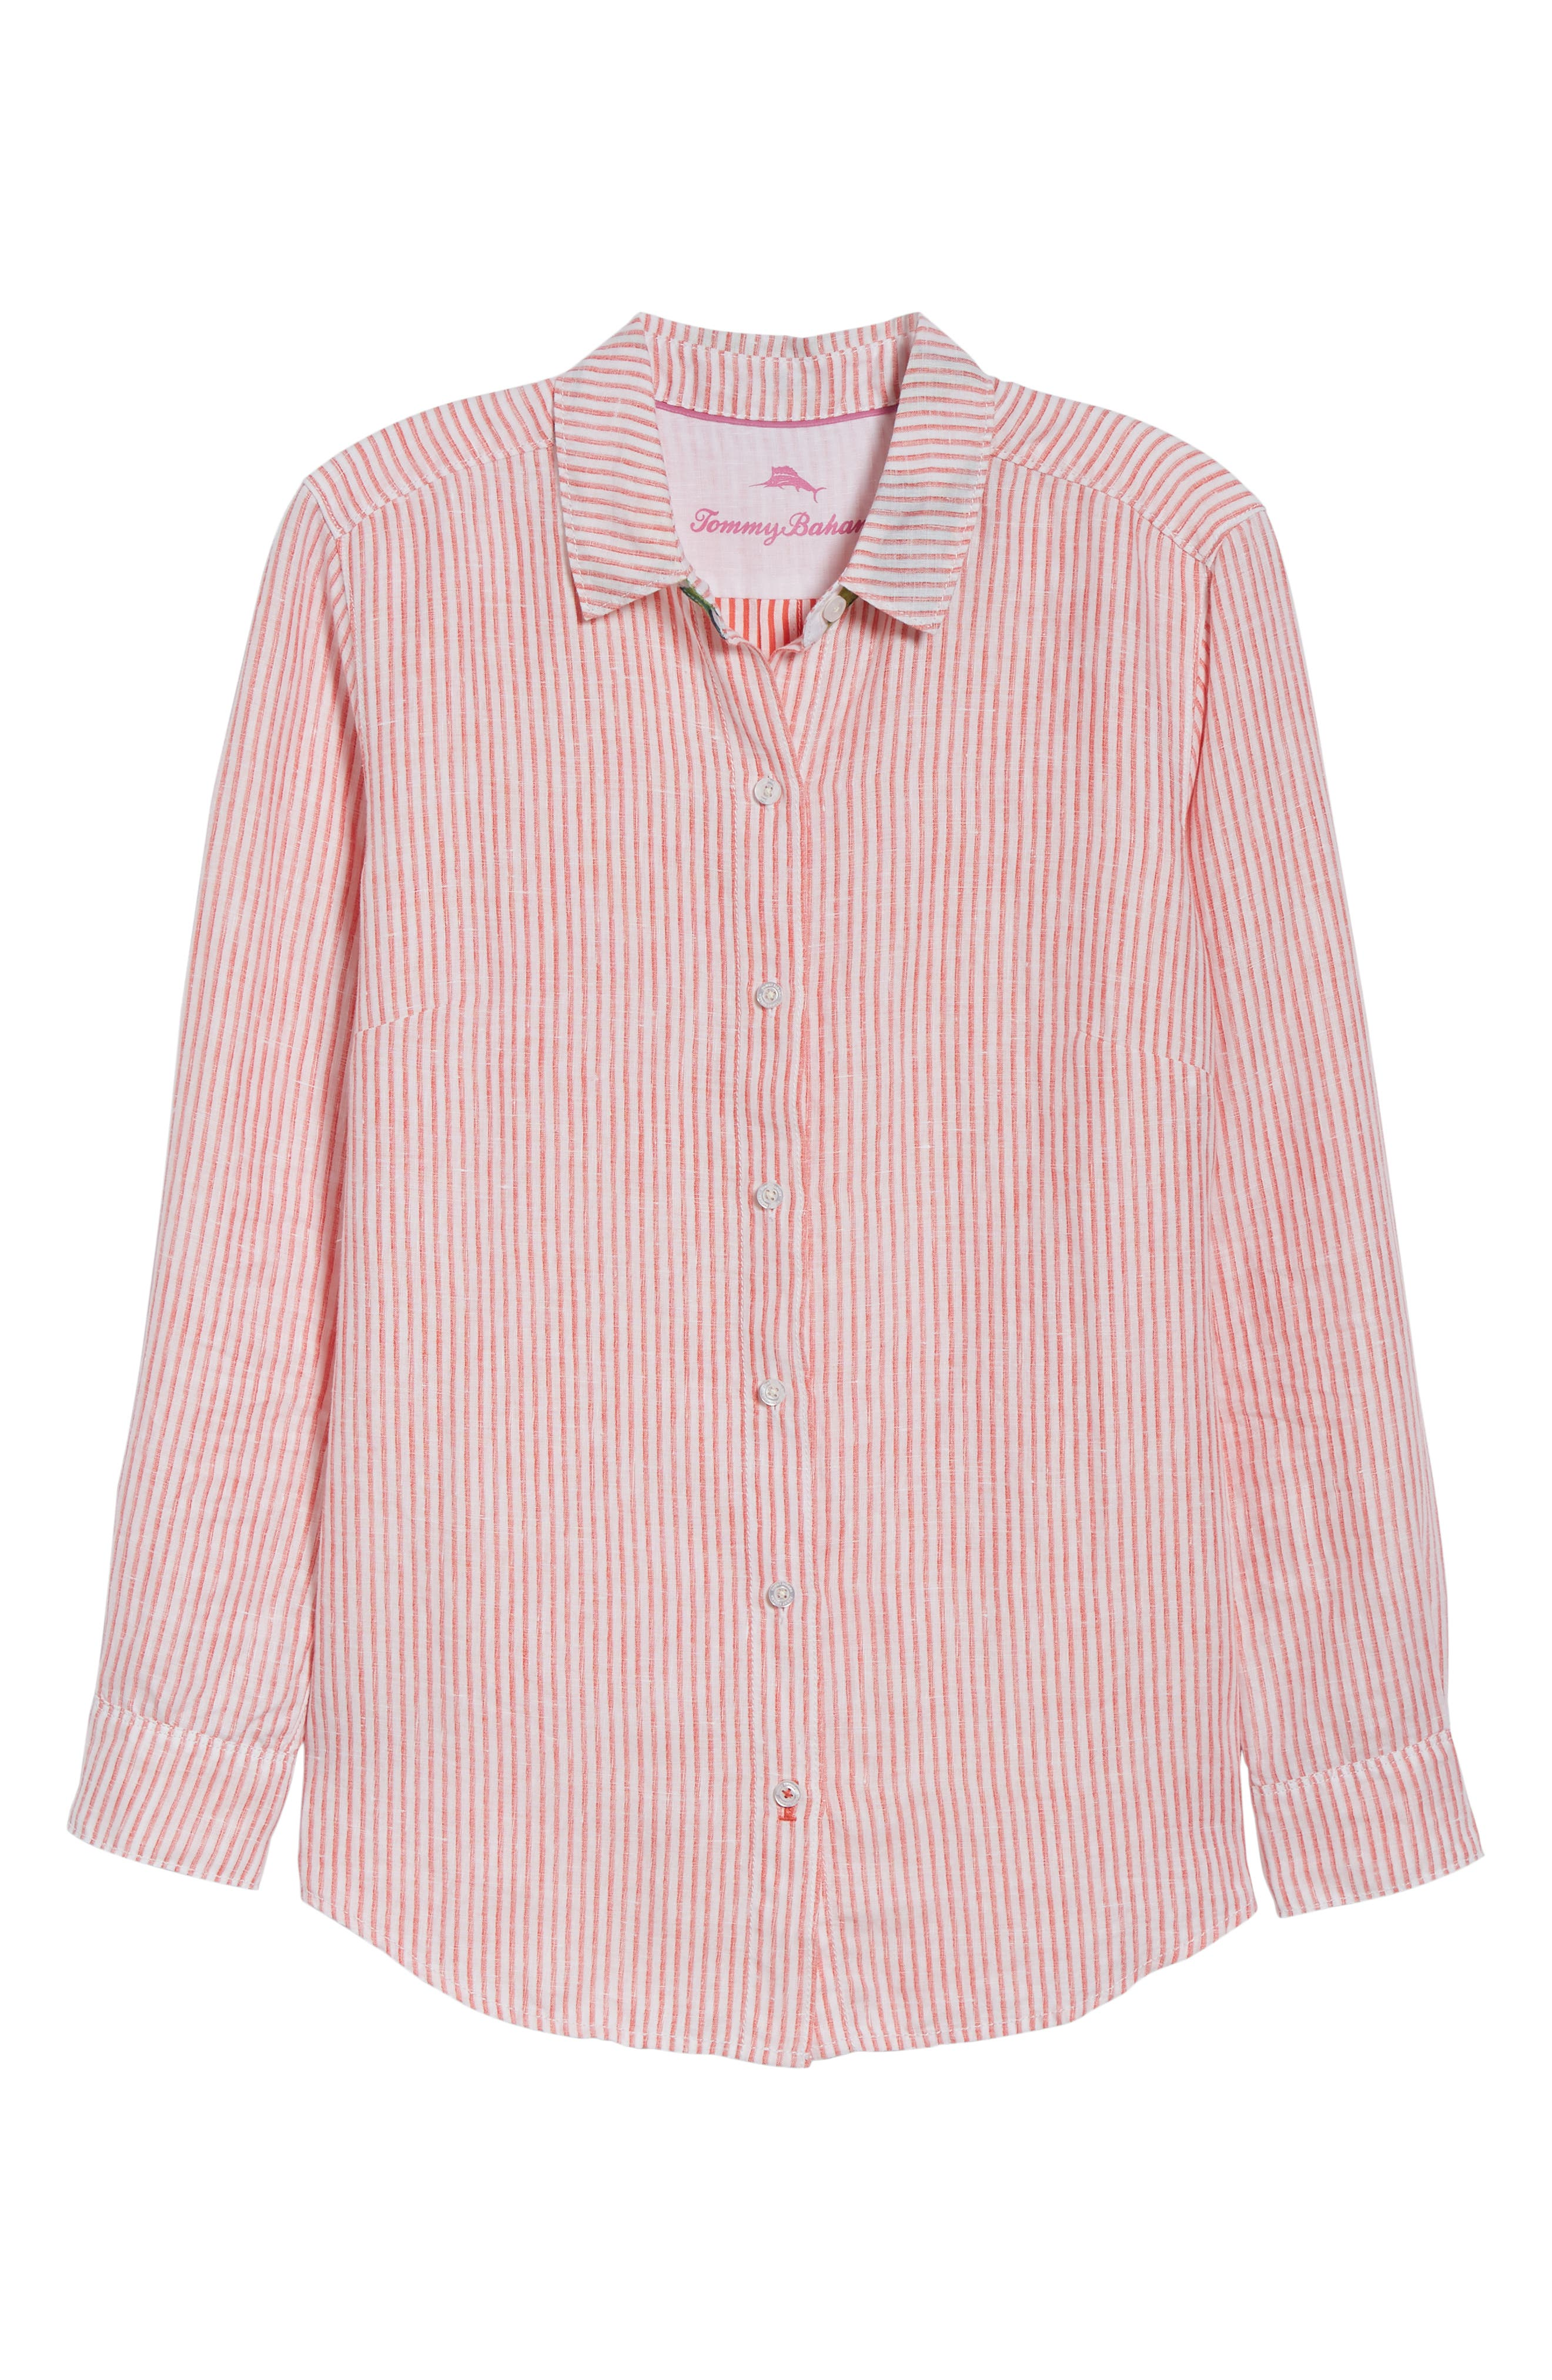 Crystalline Waters Long Sleeve Shirt,                             Alternate thumbnail 6, color,                             DUBARRY CORAL